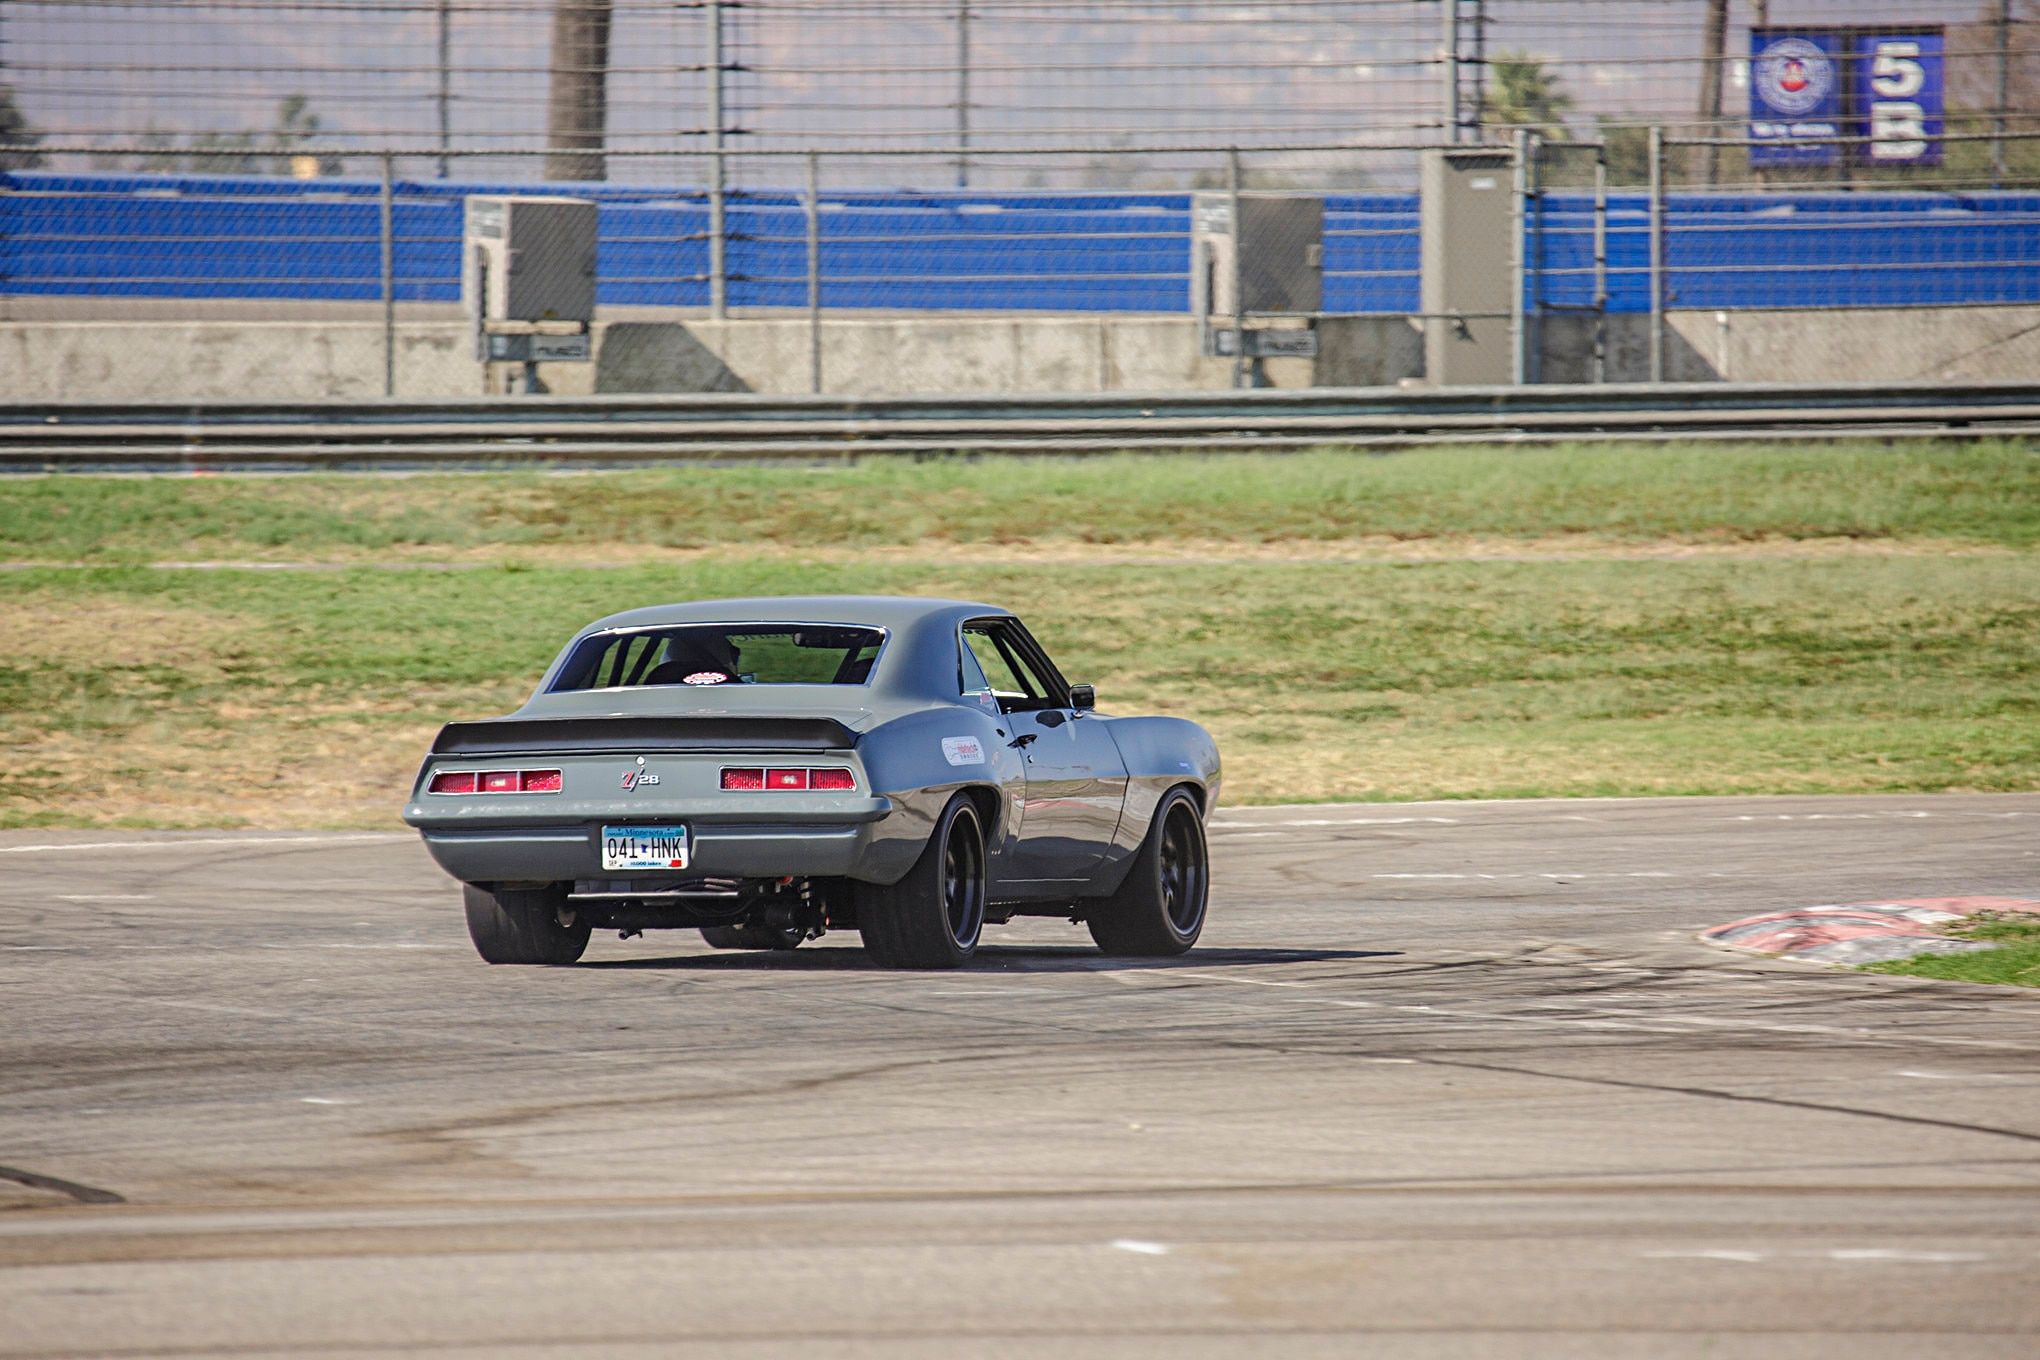 1969 Schwartz Camaro Falken Tires Super Chevy Muscle Car Challenge Rt615k 015